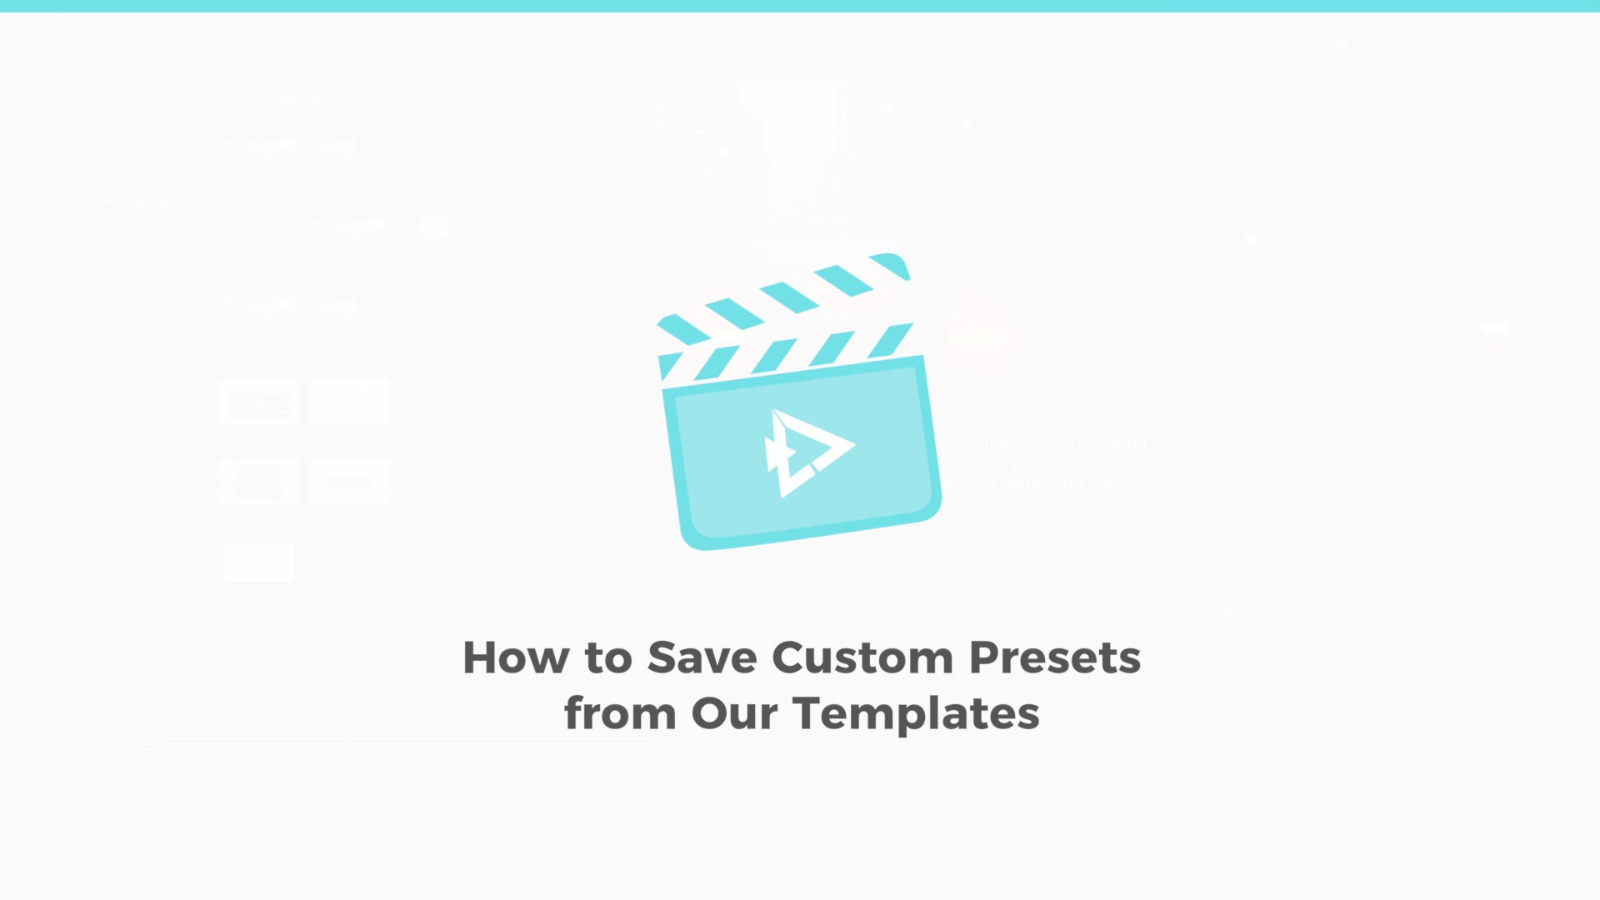 How to Save Custom Presets from Our Templates